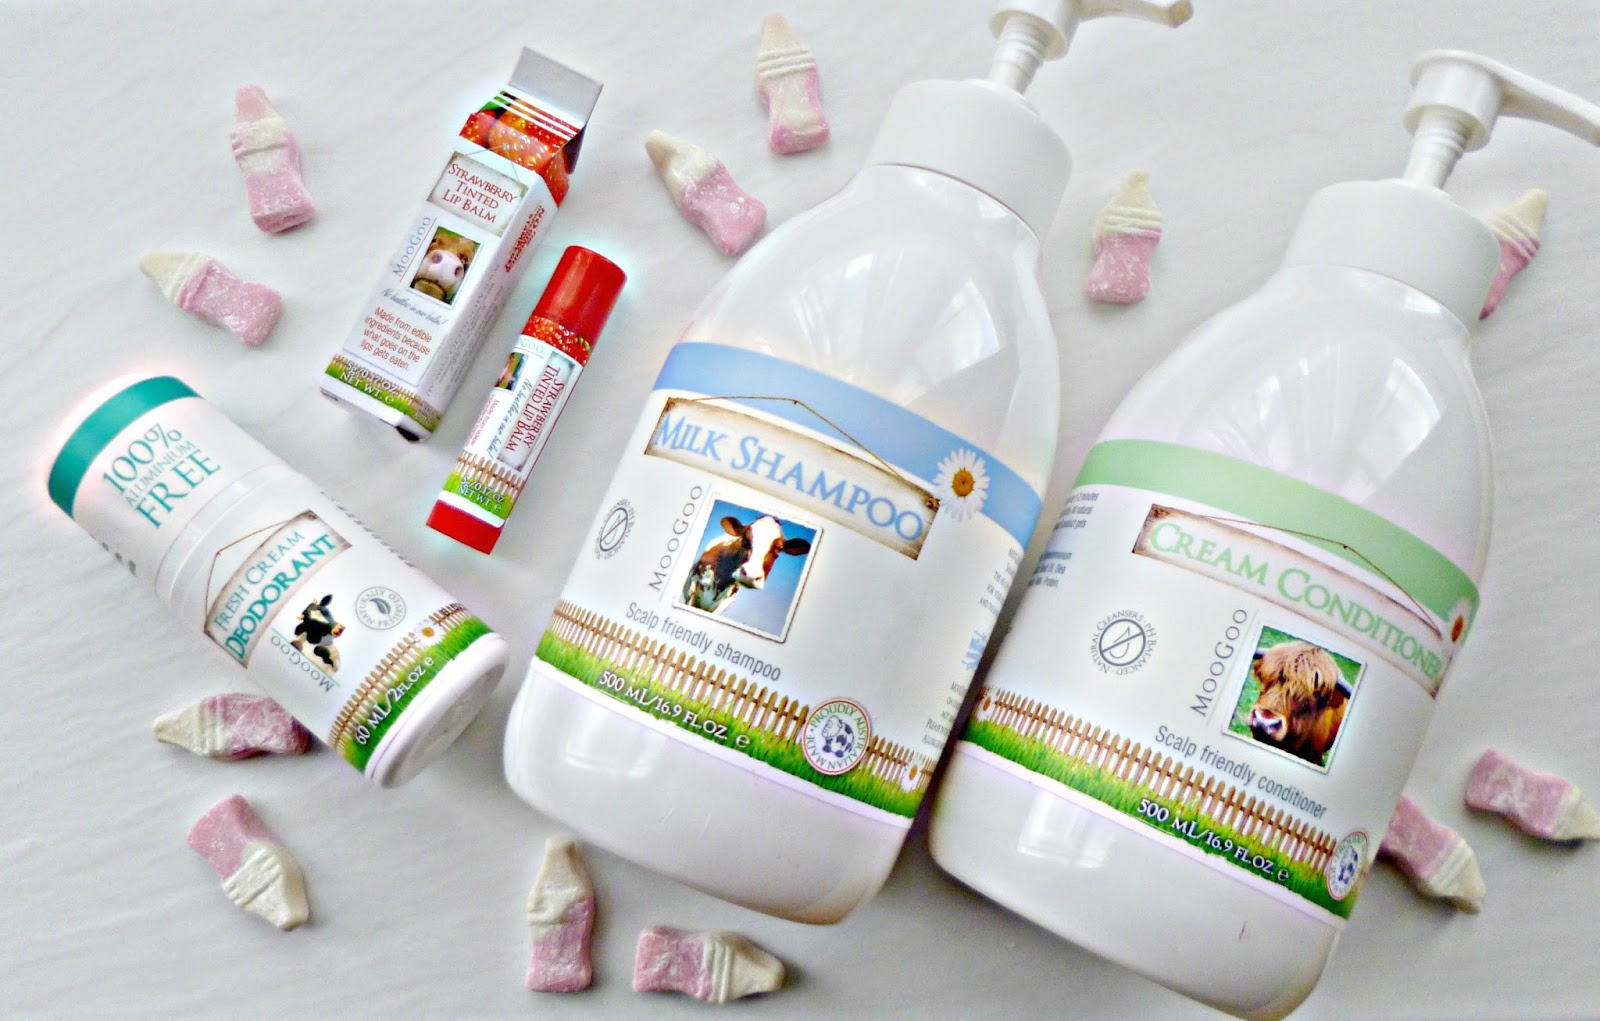 The cream of the crop: Moogoo products